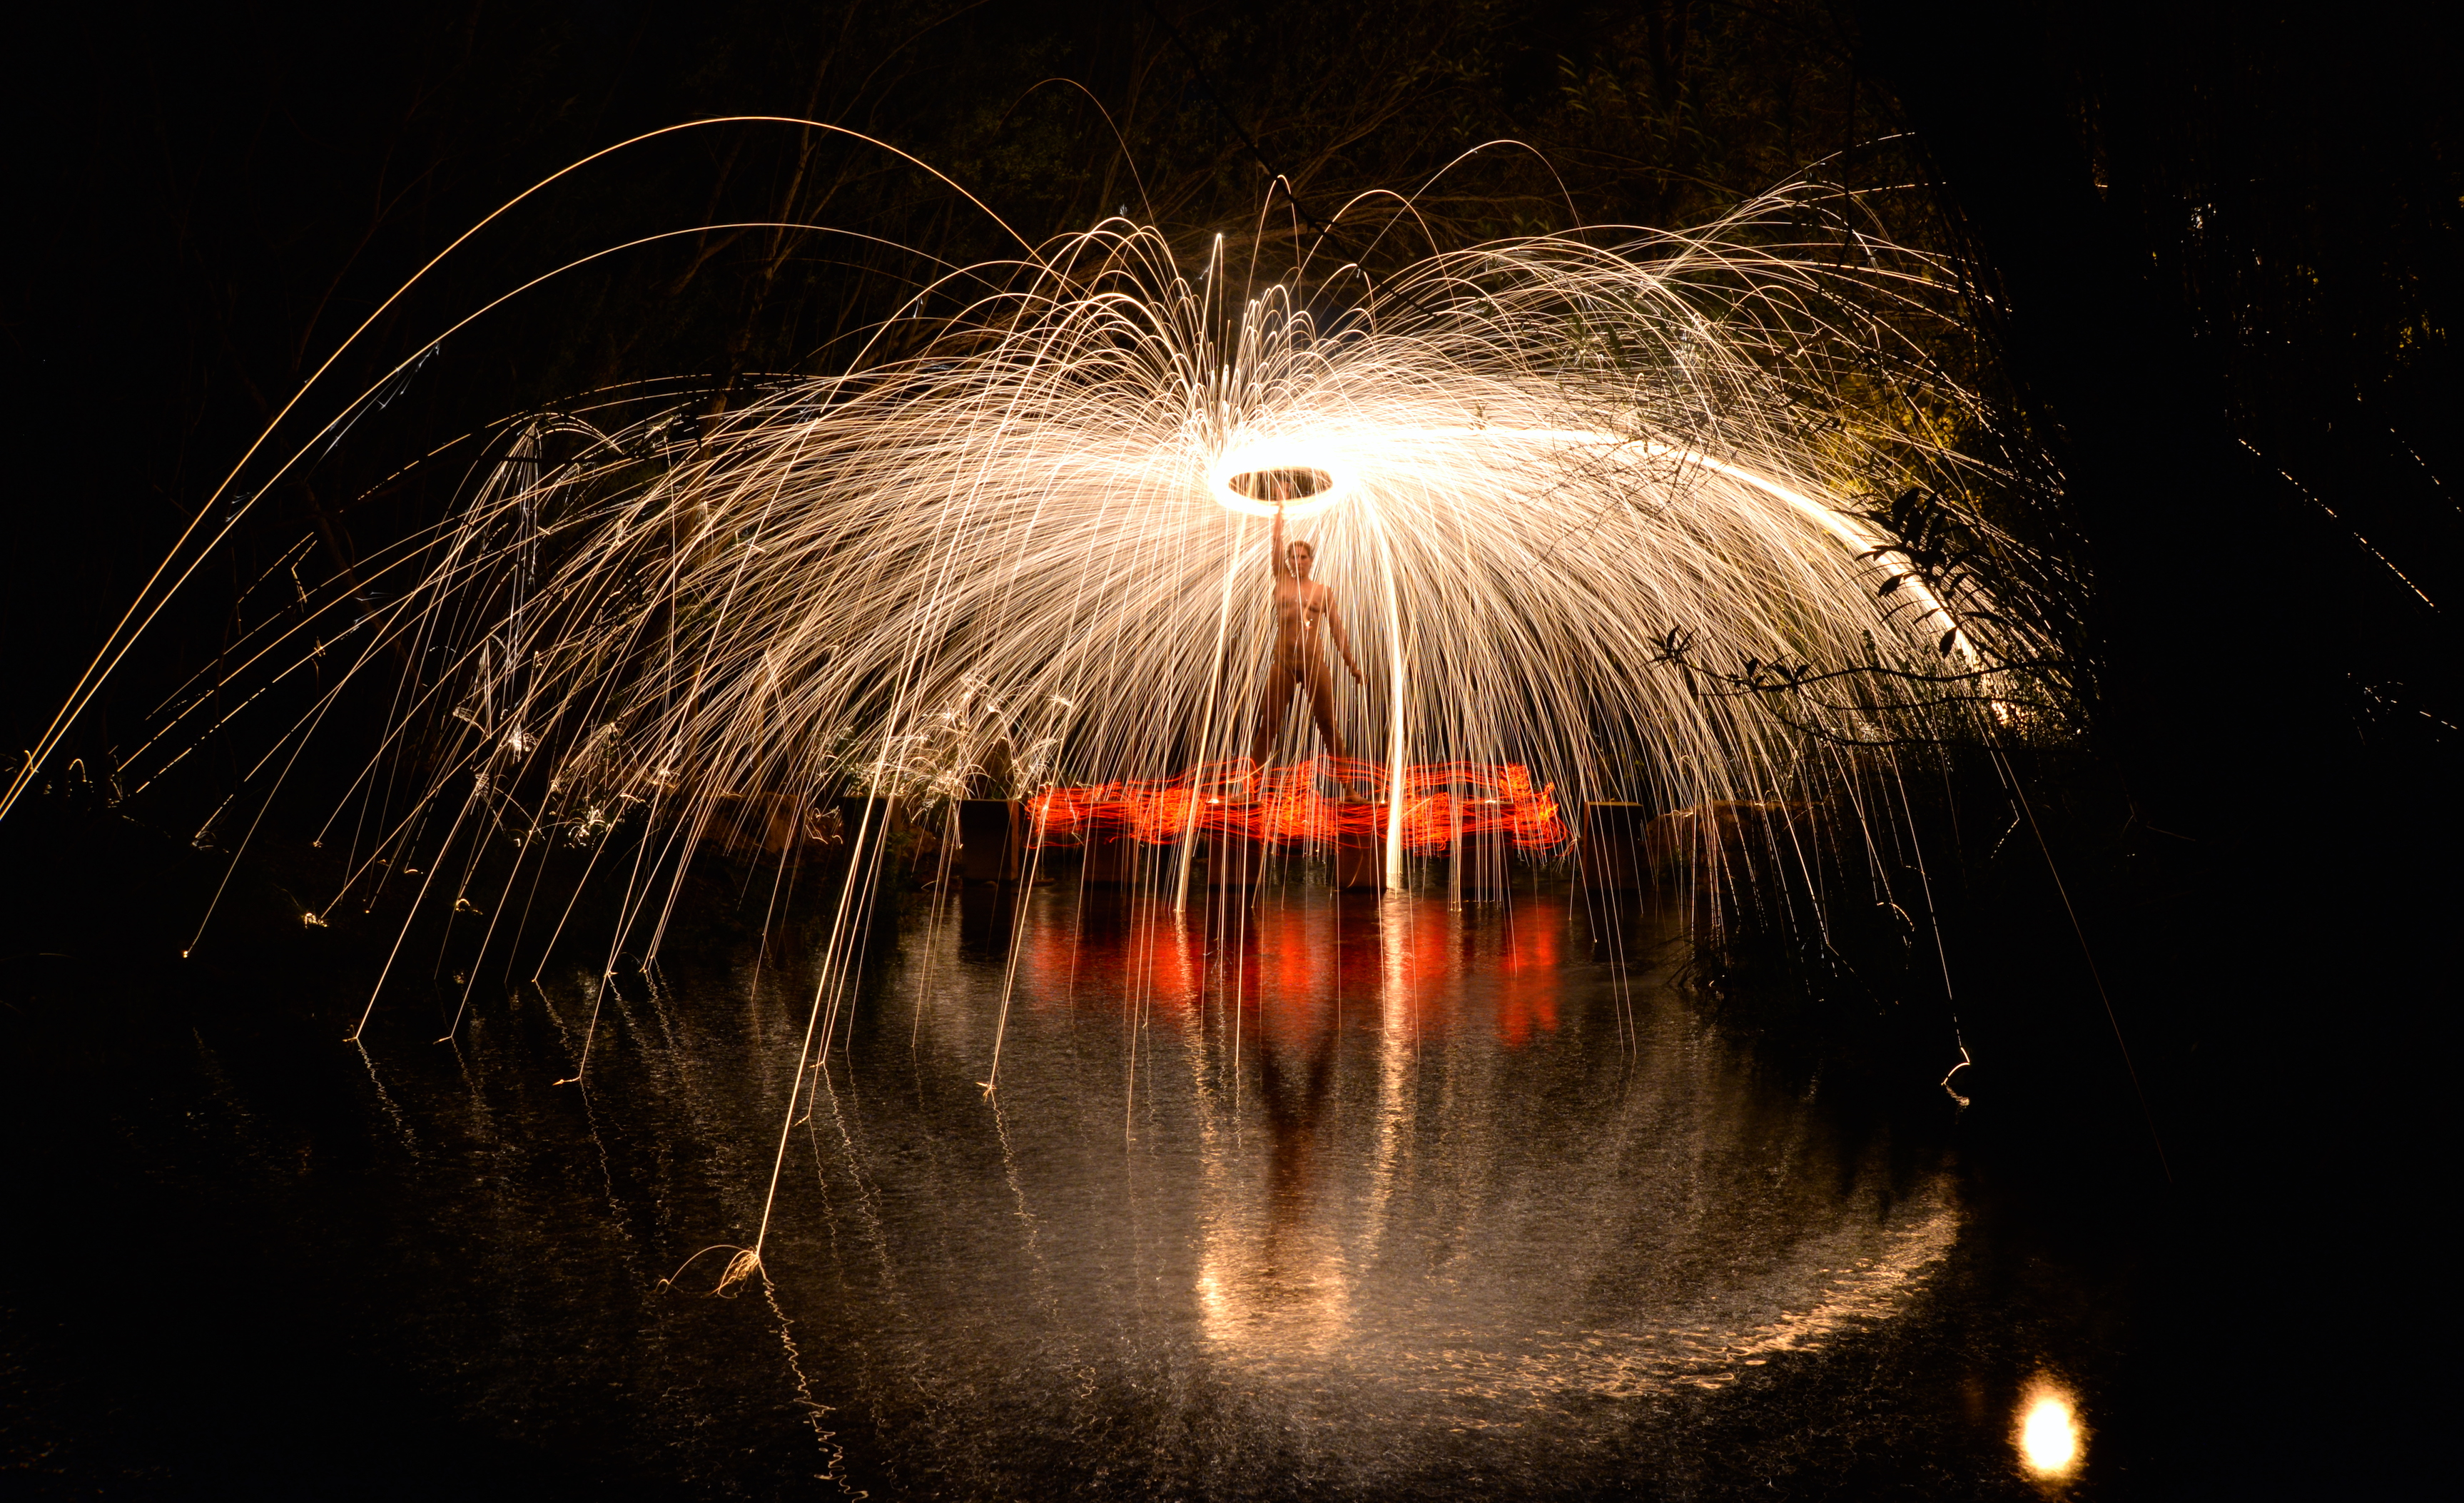 light painting steel wool river reflection